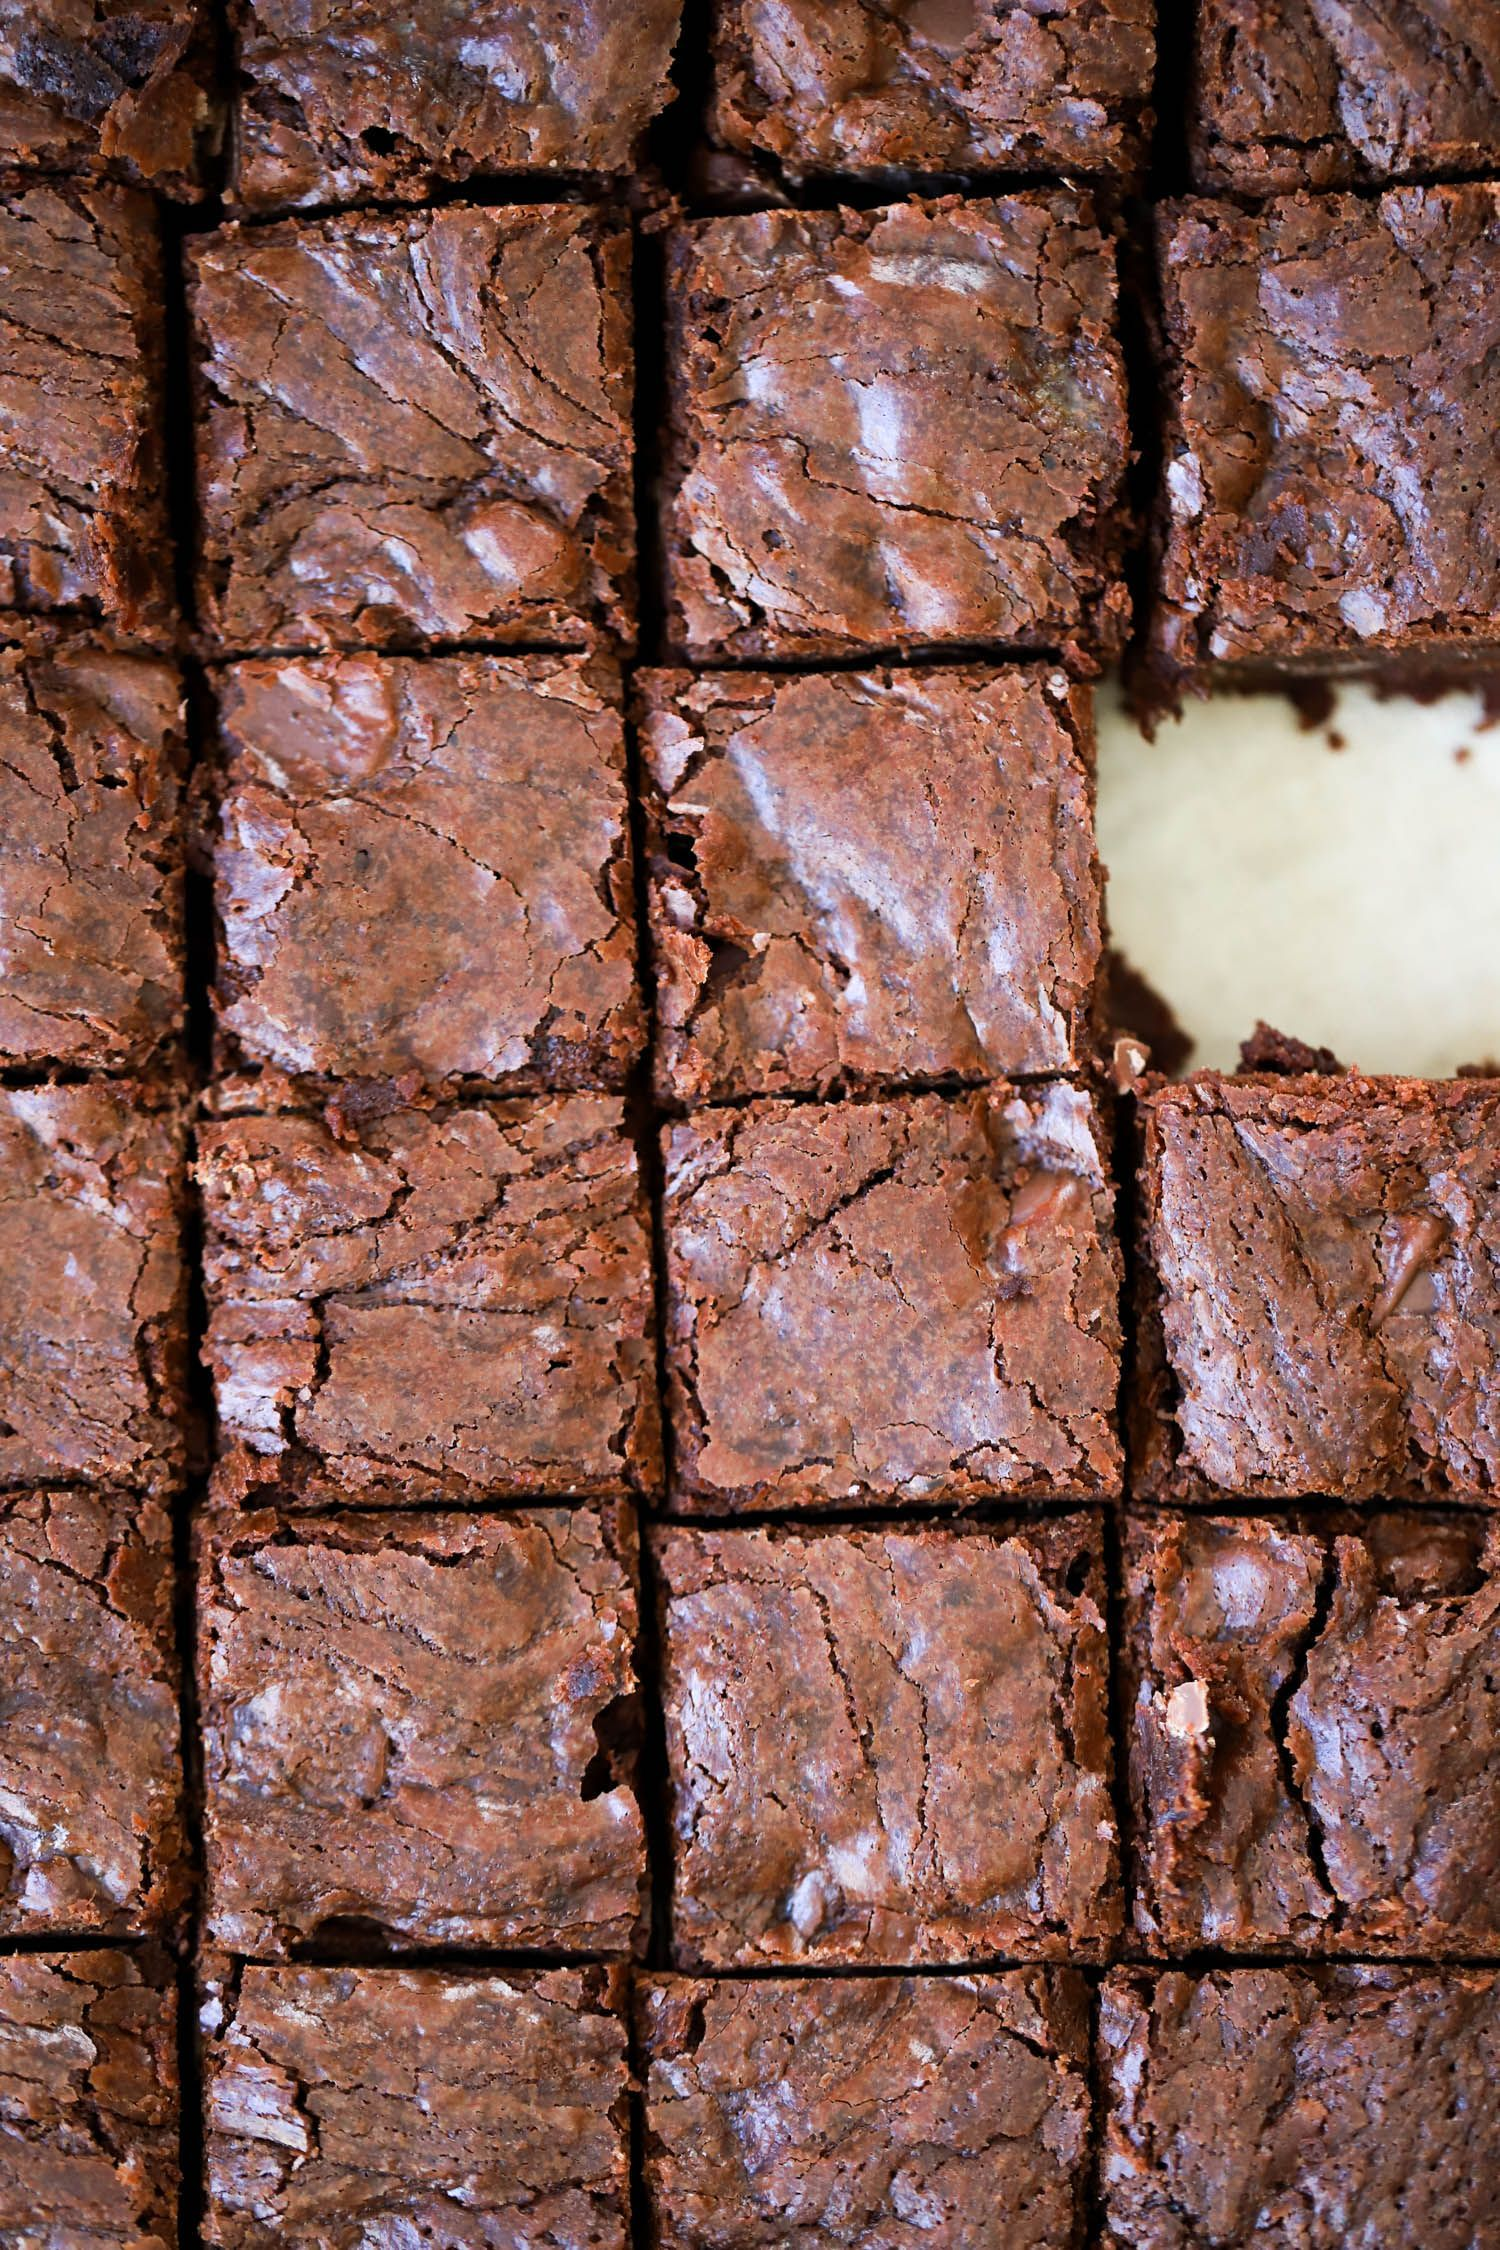 One-Pot Fudge - These easy fudge brownies are made in one pot, come together quickly, and include t